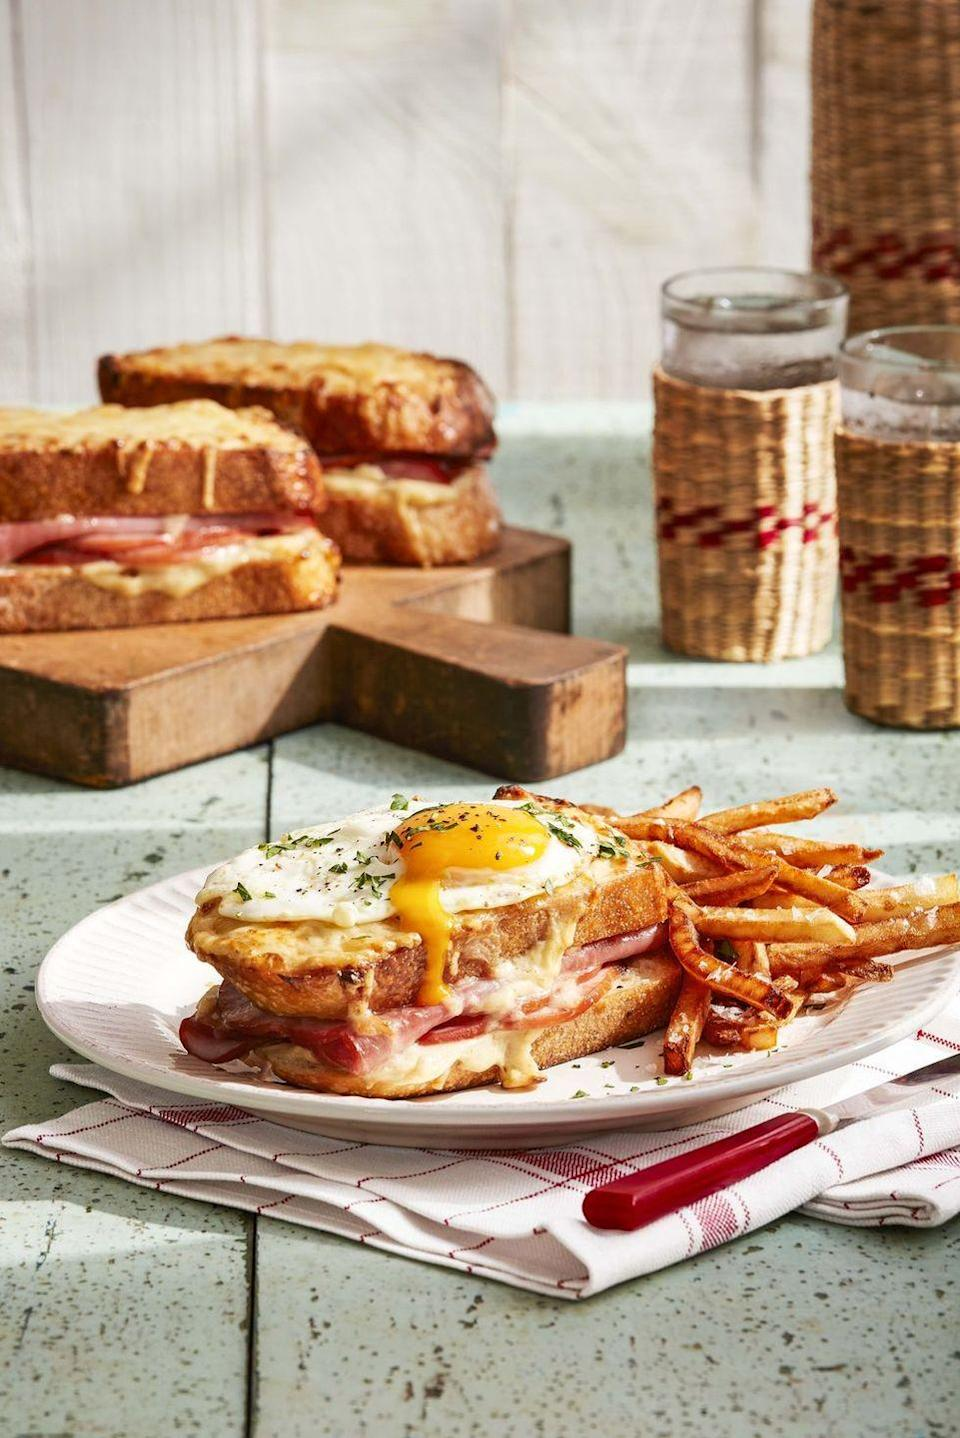 """<p>Forget the name (or call it a """"croque monsieur"""" with a fried egg). This sandwich is everything dad wants: ham and cheese on rustic sourdough, drizzled in a rich sauce and then grilled to perfection.</p><p><strong><a href=""""https://www.countryliving.com/food-drinks/a32042684/croque-madames/"""" rel=""""nofollow noopener"""" target=""""_blank"""" data-ylk=""""slk:Get the recipe"""" class=""""link rapid-noclick-resp"""">Get the recipe</a>.</strong> </p>"""